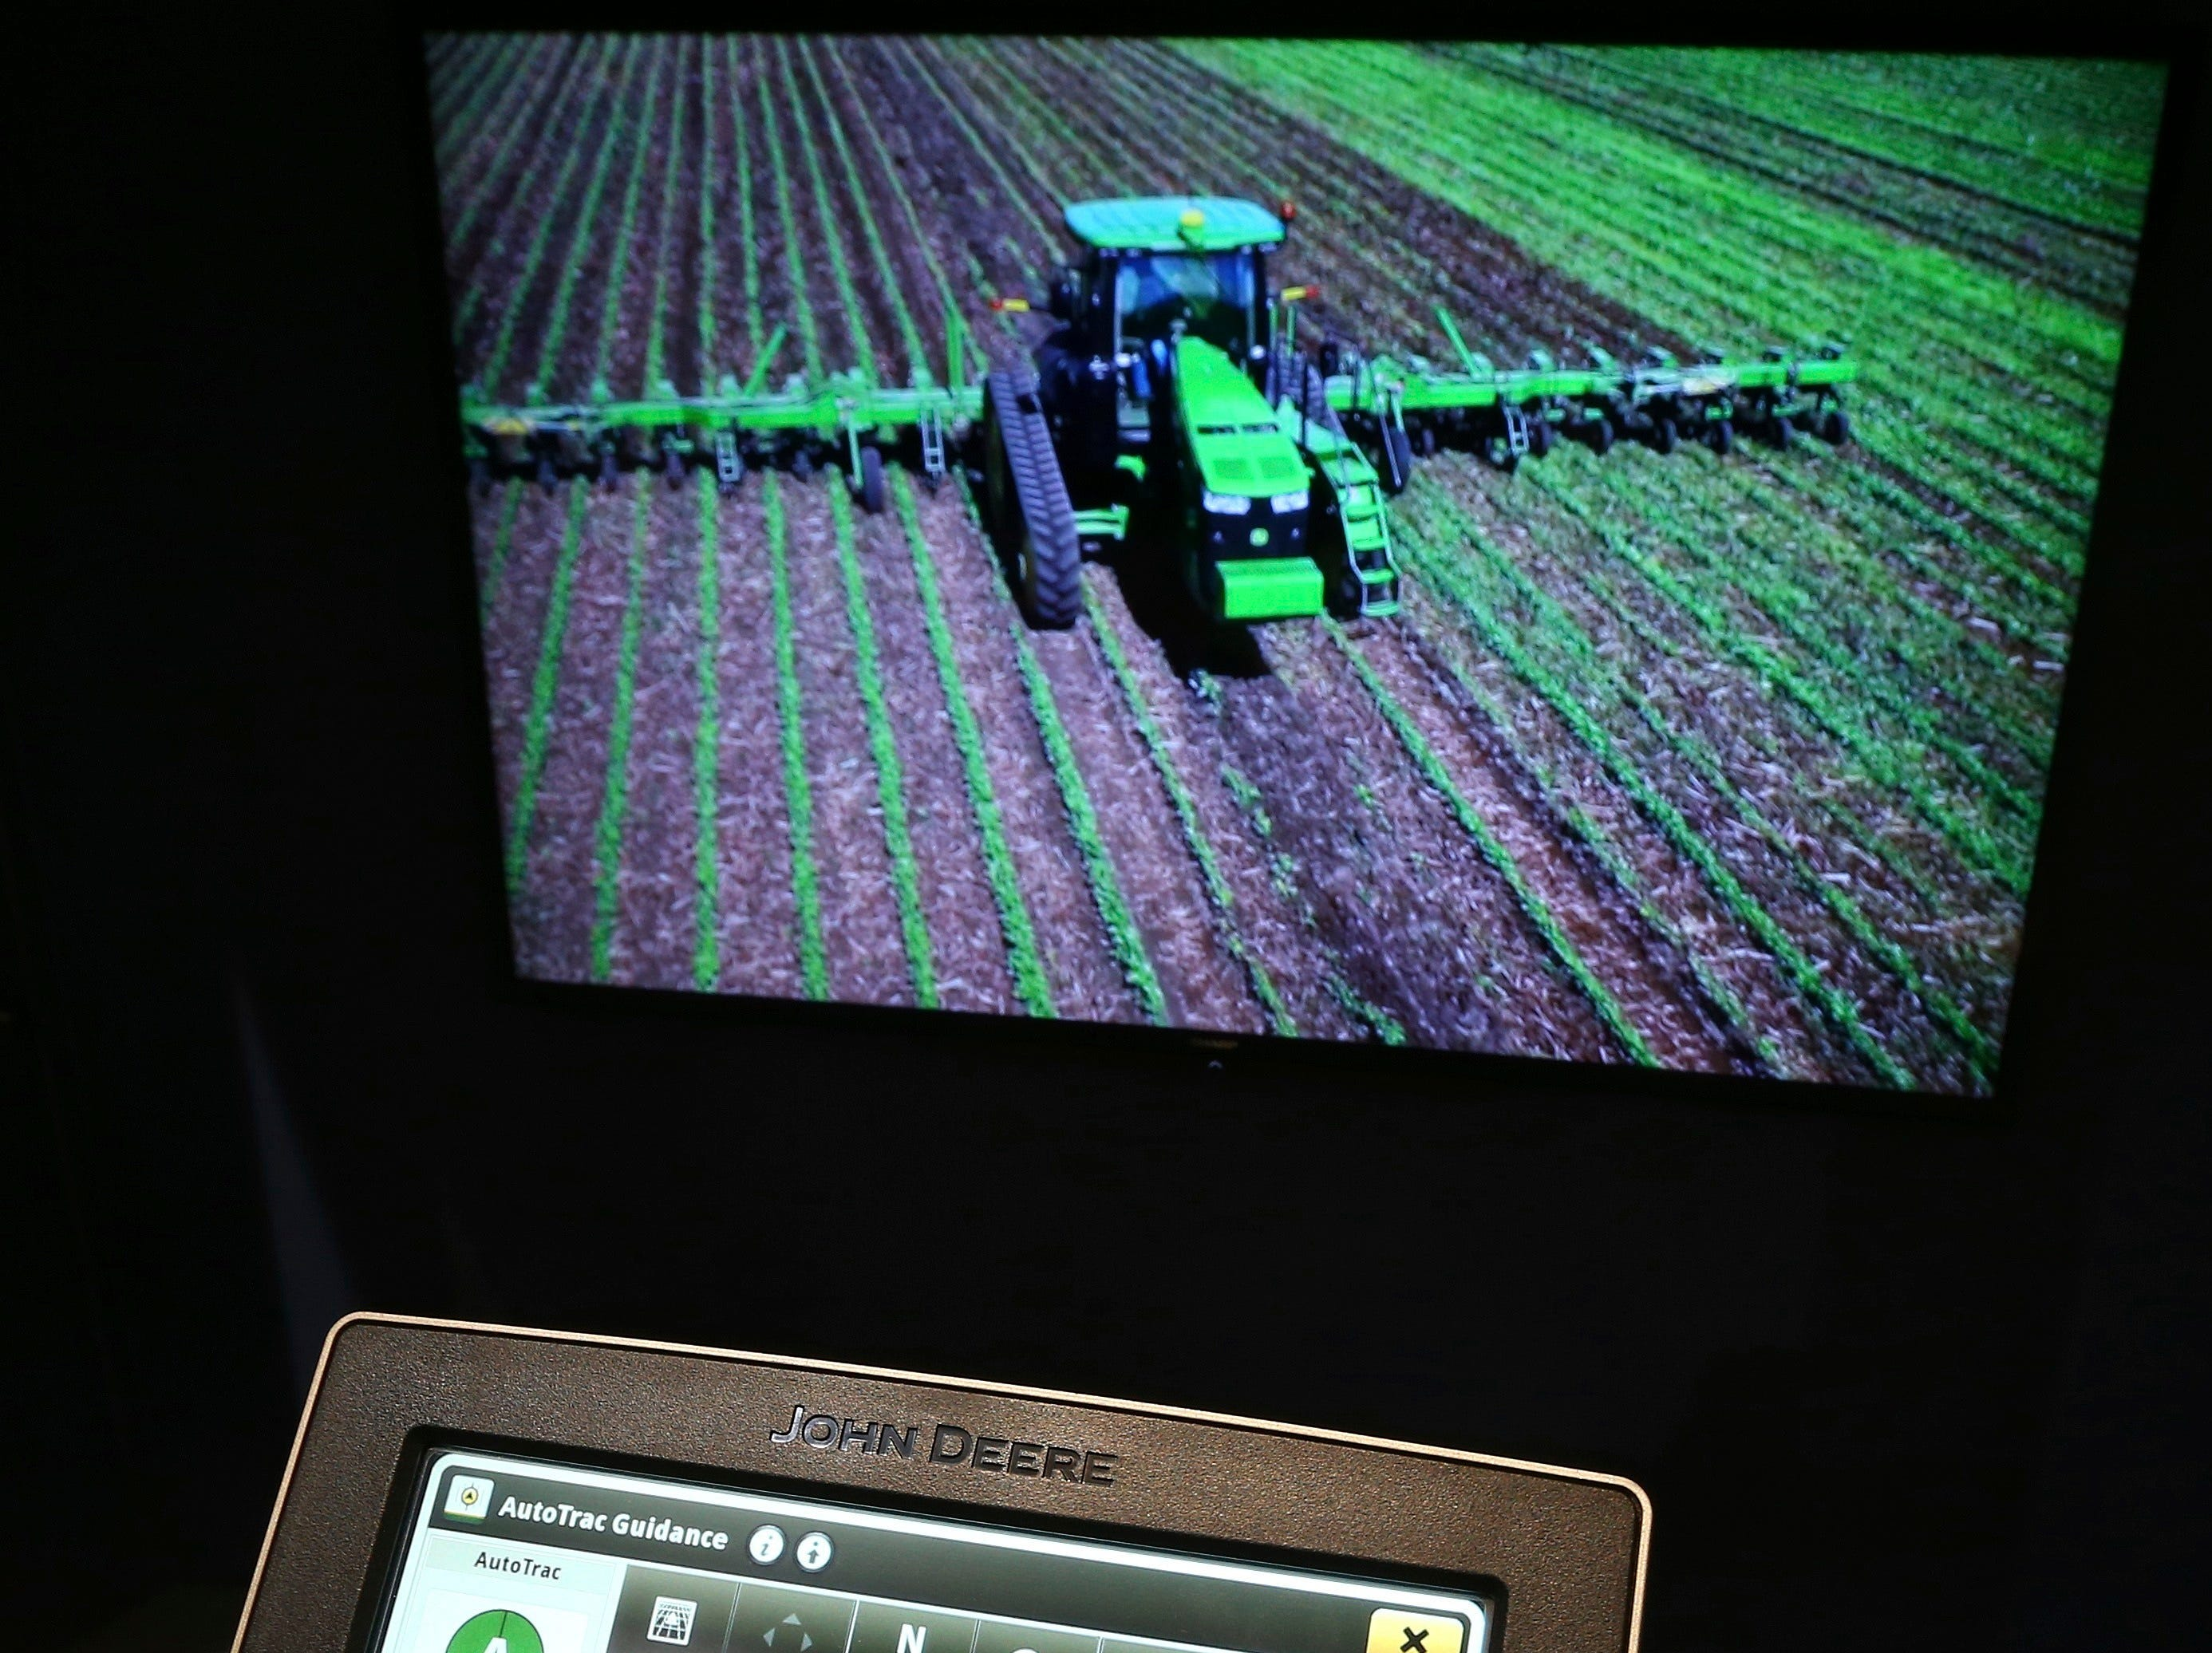 John Deere has hauled in self-driving tractors and a 20-ton combine harvester aided by artificial intelligence using the combine's cameras with computer-vision technology to track the quality of grain coming into the machine, so that its kernel-separating settings can be adjusted automatically. Farmers can monitor it remotely using a smartphone app, as shown at CES International on Tuesday, Jan. 8, 2019, in Las Vegas.